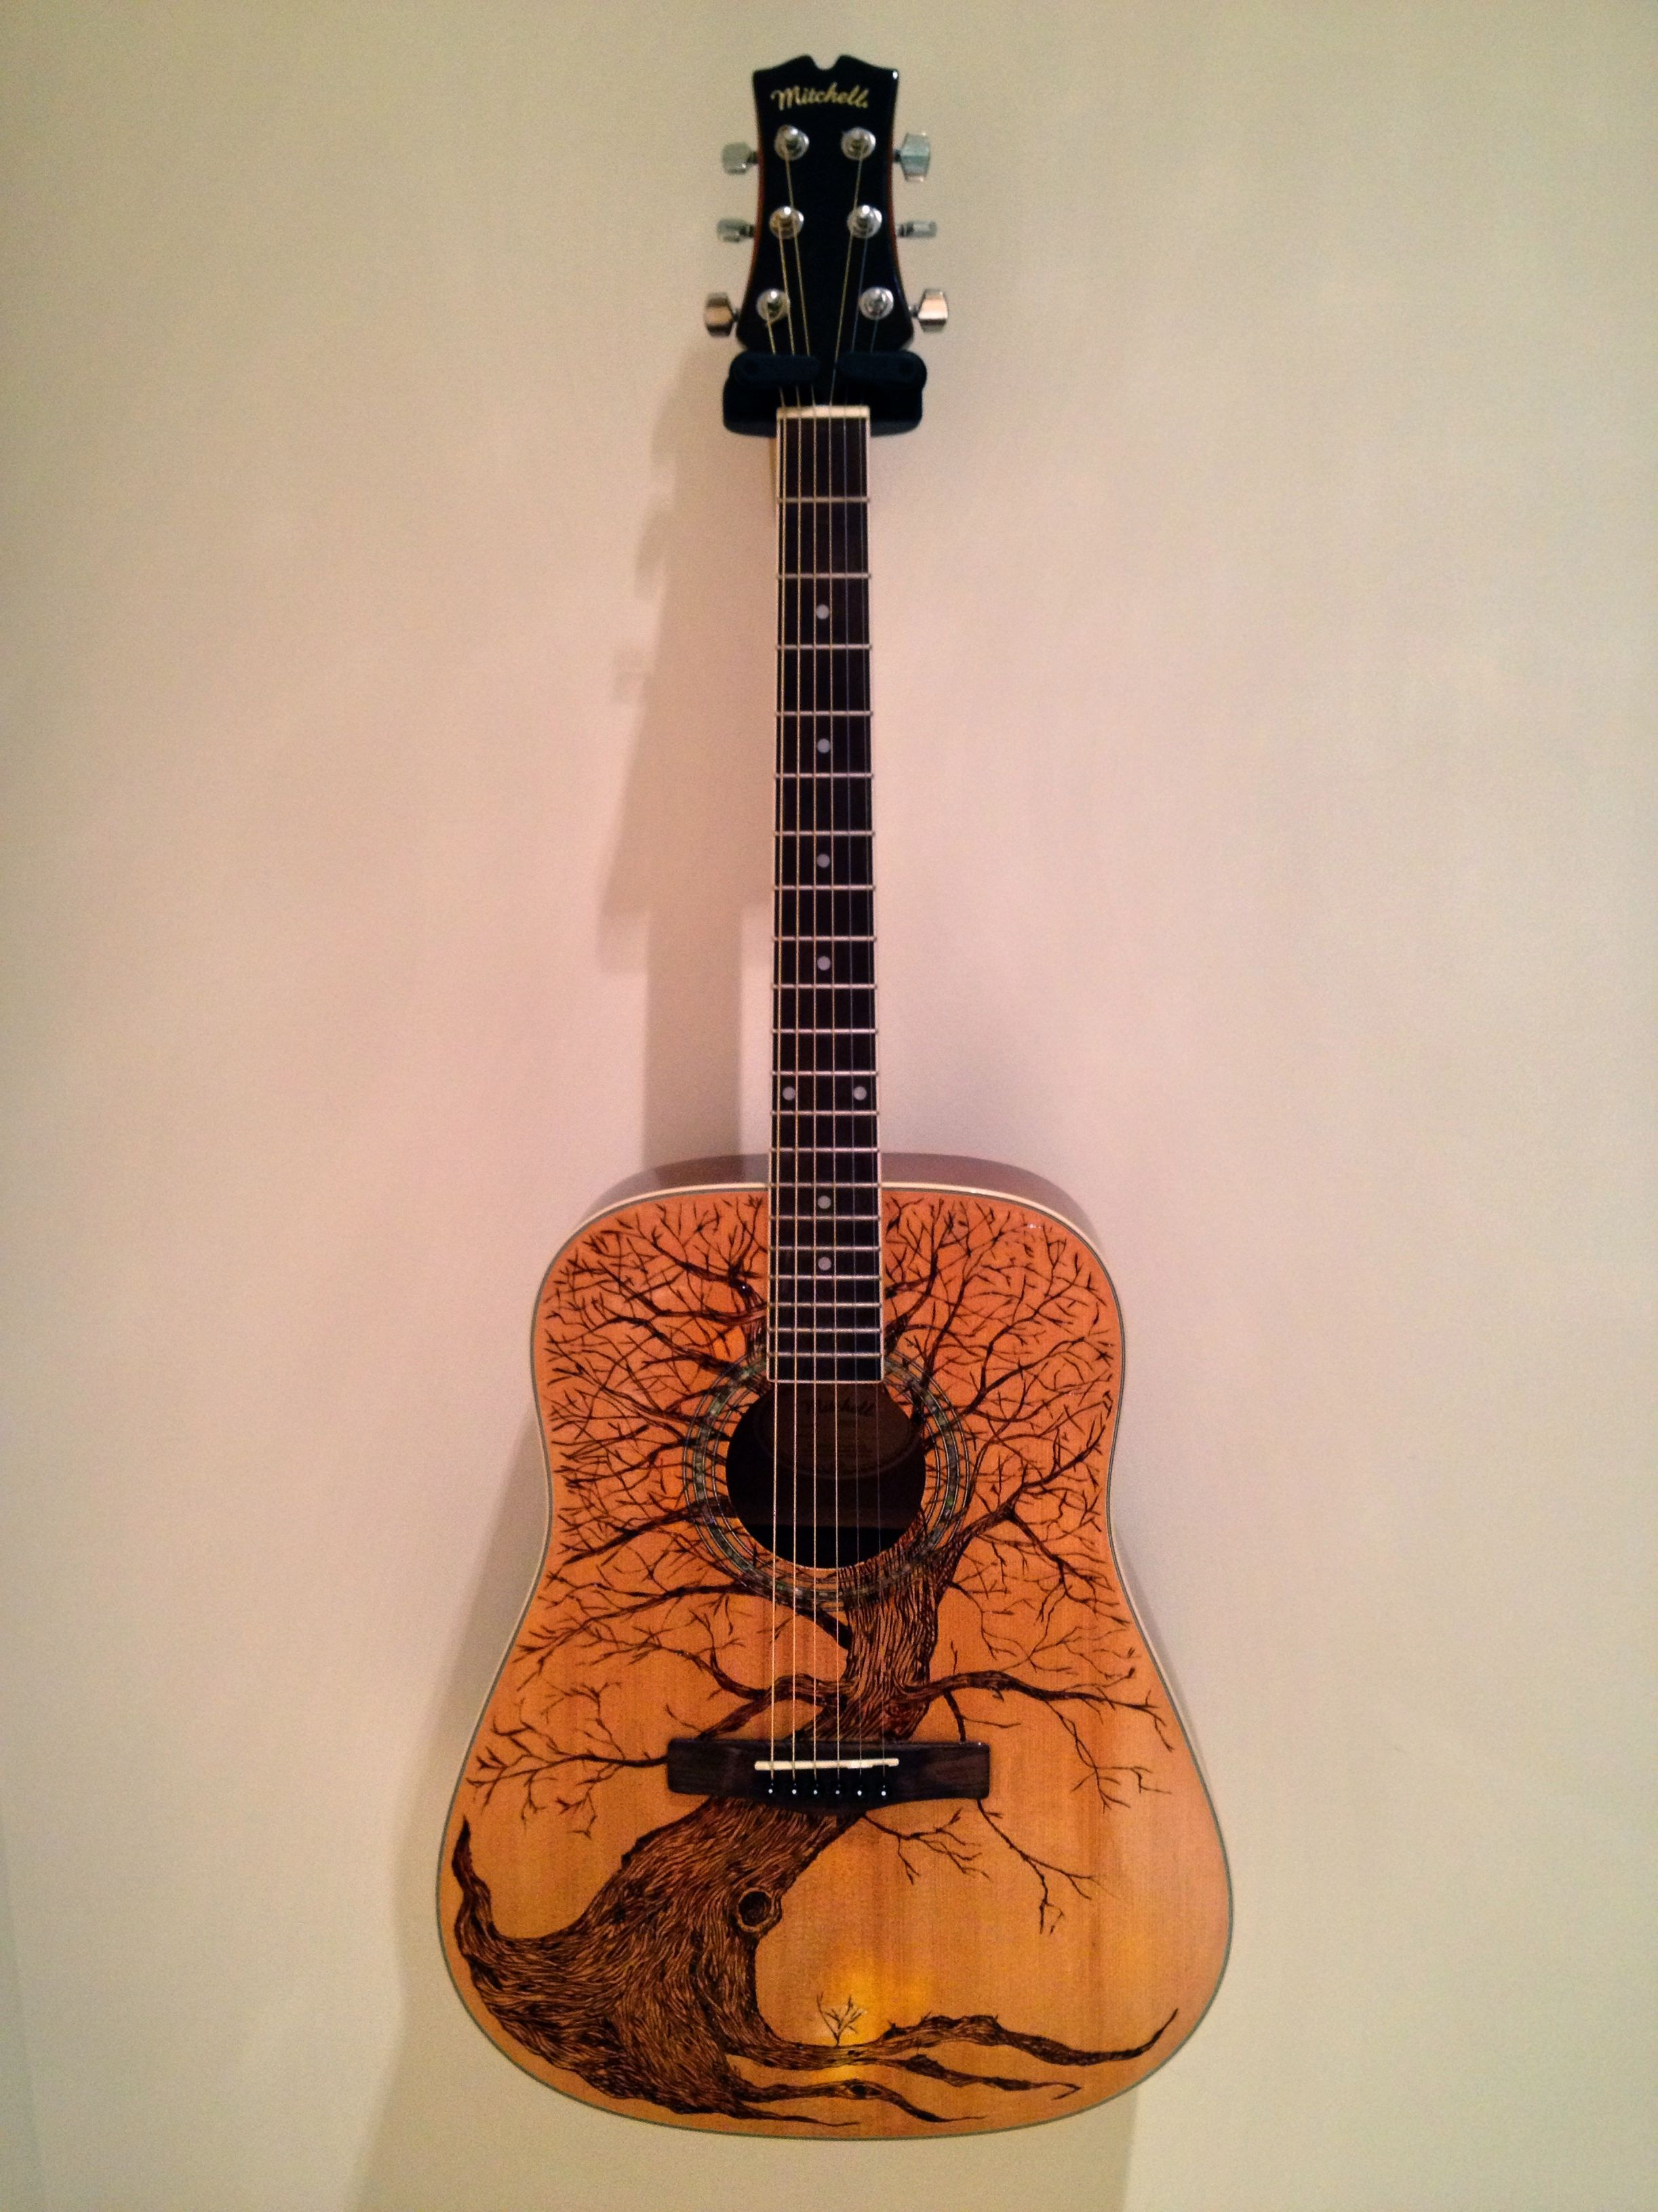 Art guitar Pyrography I strip the guitar top and wood burn the design and